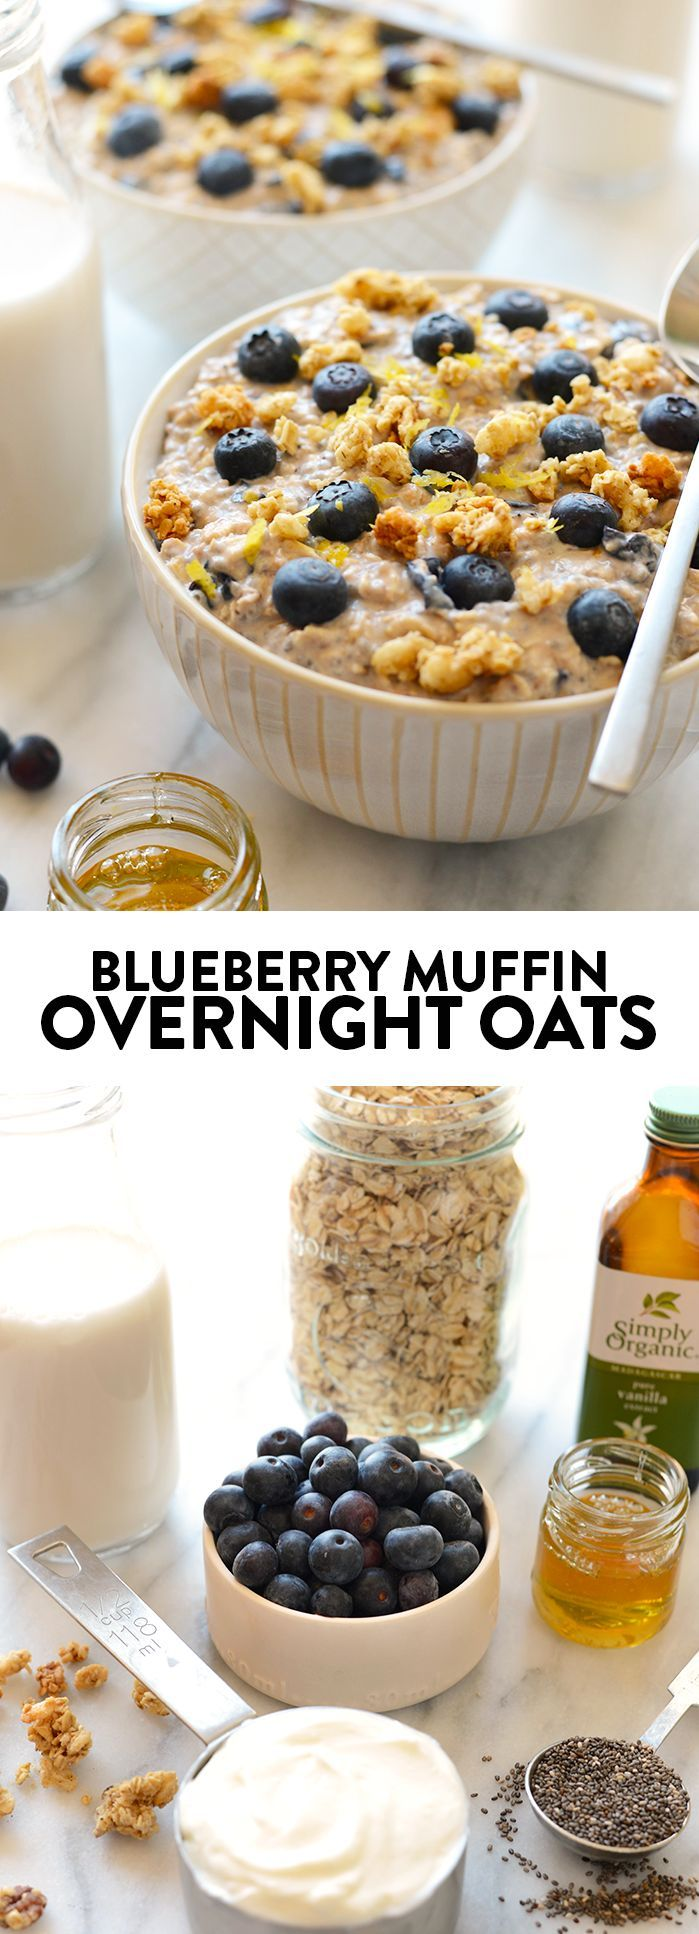 14 best healthy oatmeal and granola recipes images on pinterest use maple syrup instead of honey gf oatsl the same flavors of a blueberry muffin but better for you make these blueberry muffin overnight oats tomorrow malvernweather Image collections